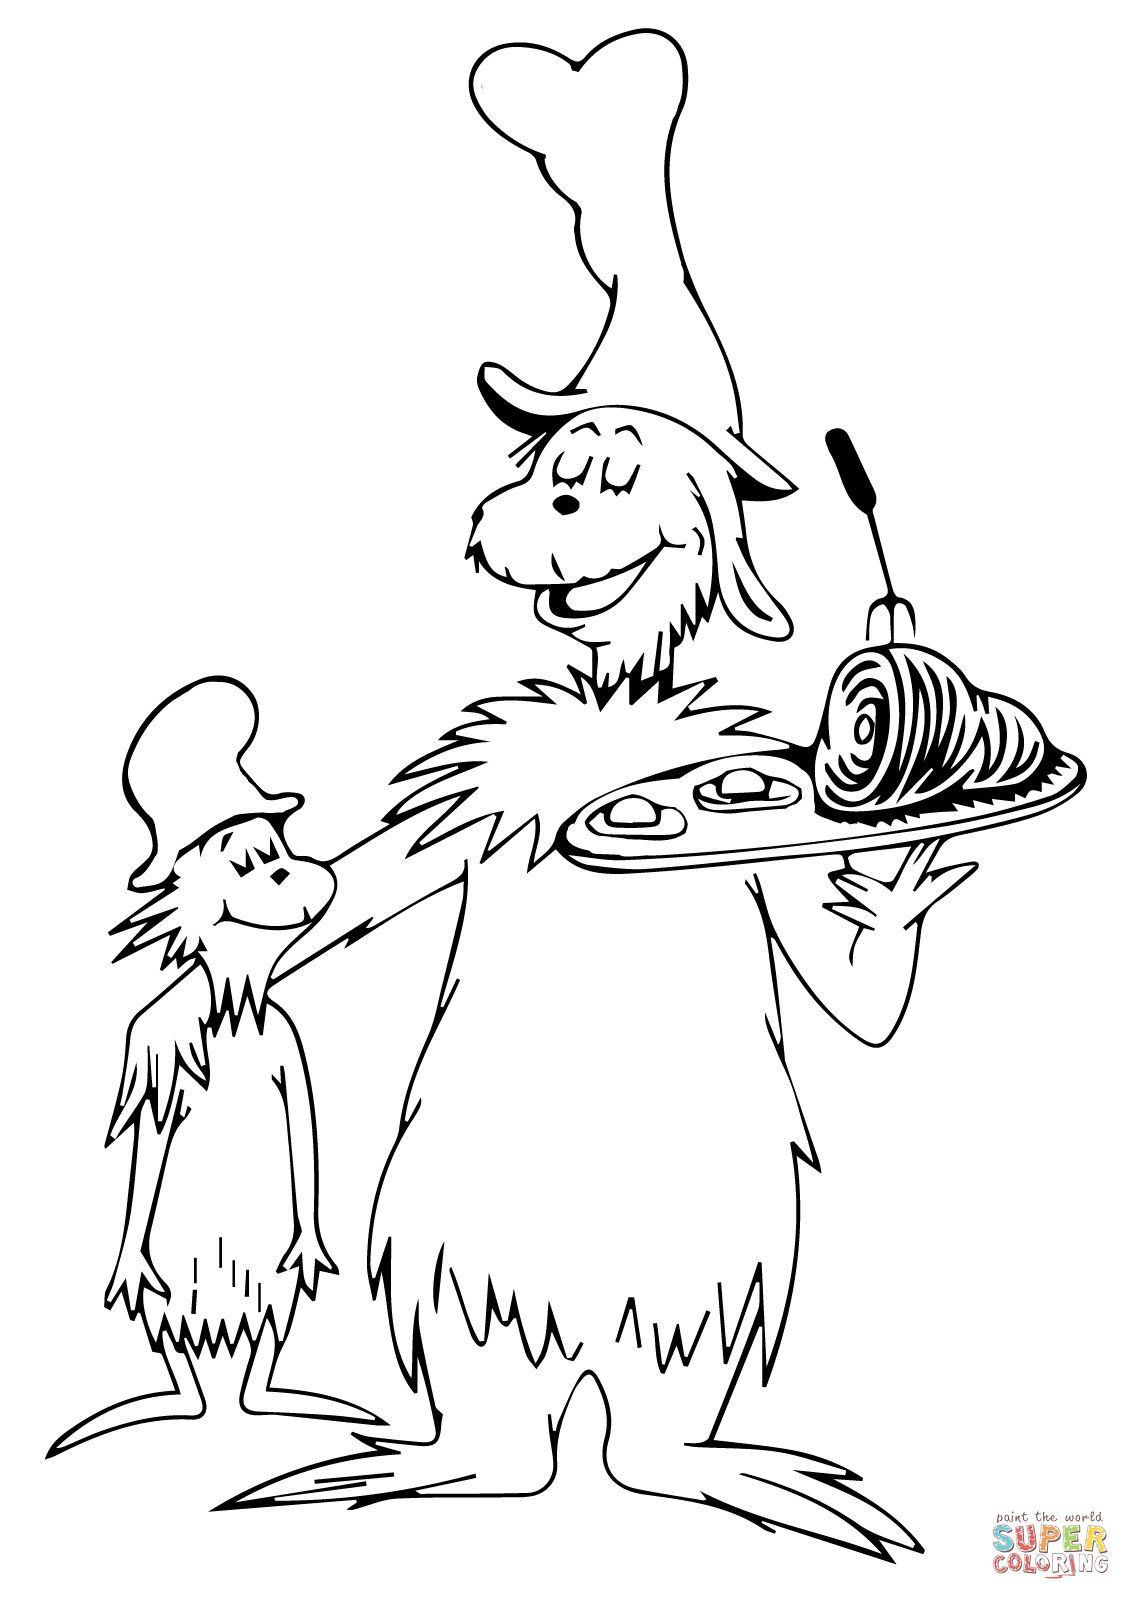 green eggs and ham coloring page # 1